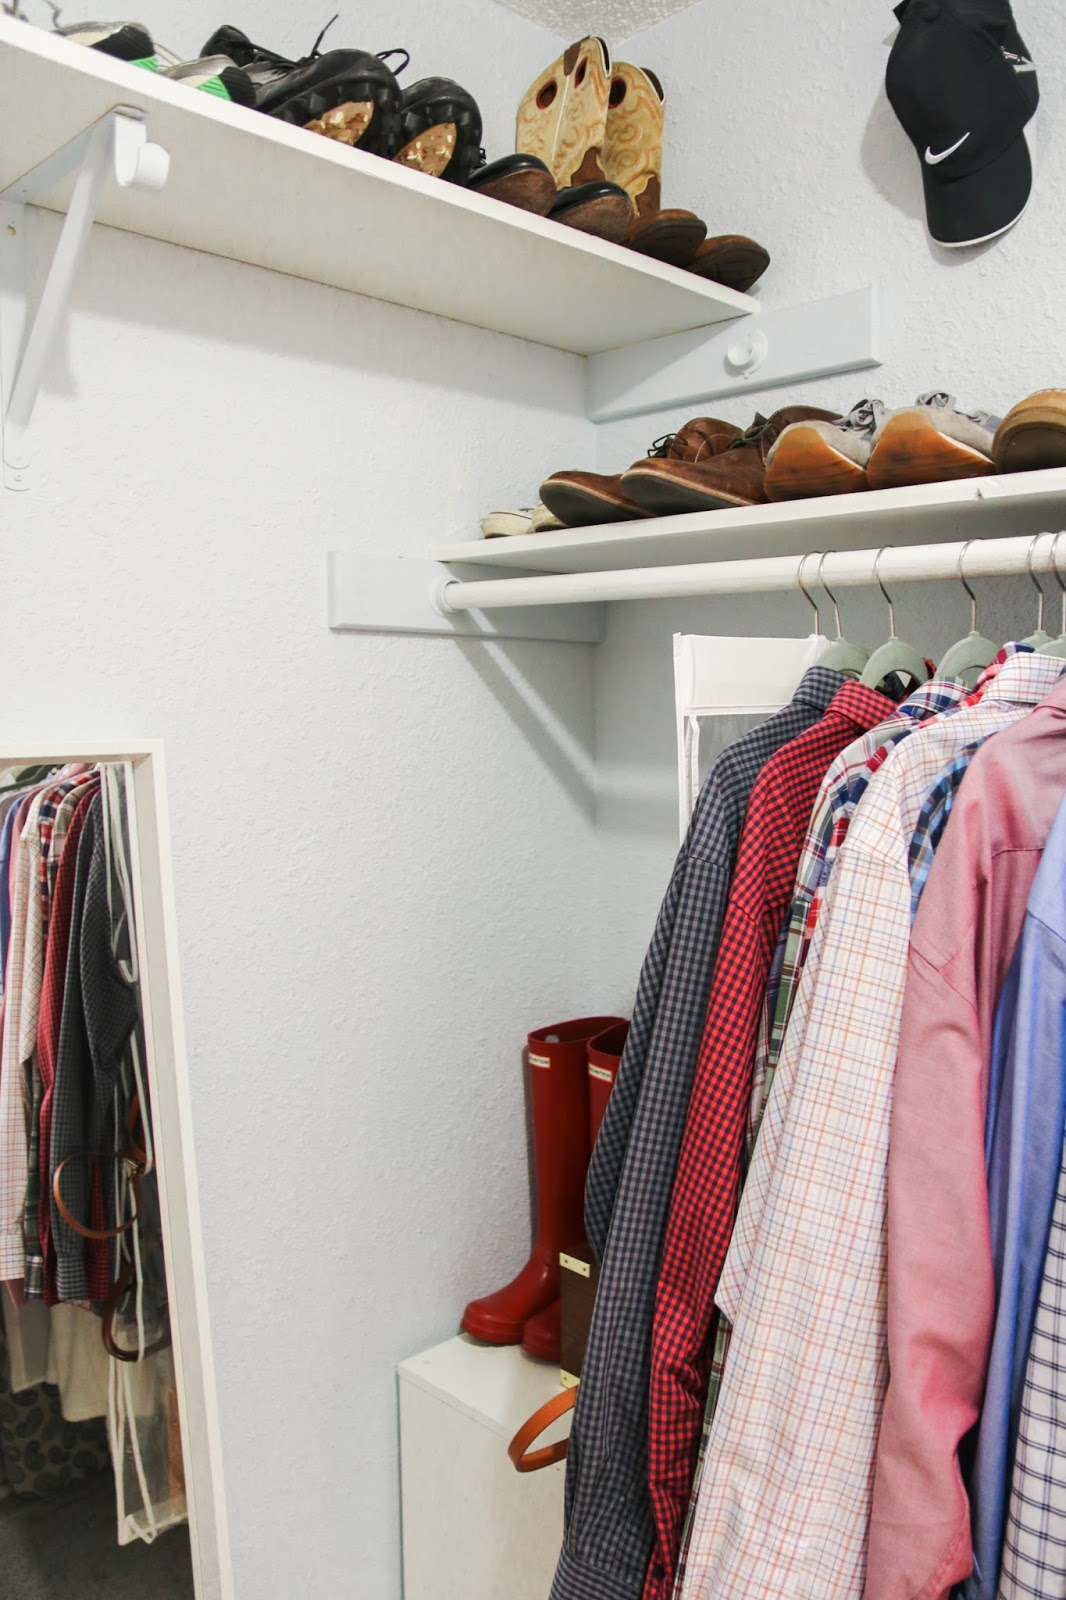 closet organization, closet makeover, home organization, minimalist closet, minimalist wardrobe, before and after closet, budget friendly closet makeover, closet renovation, Austin California closets, Austin blogger, Austin home decor, closet storage